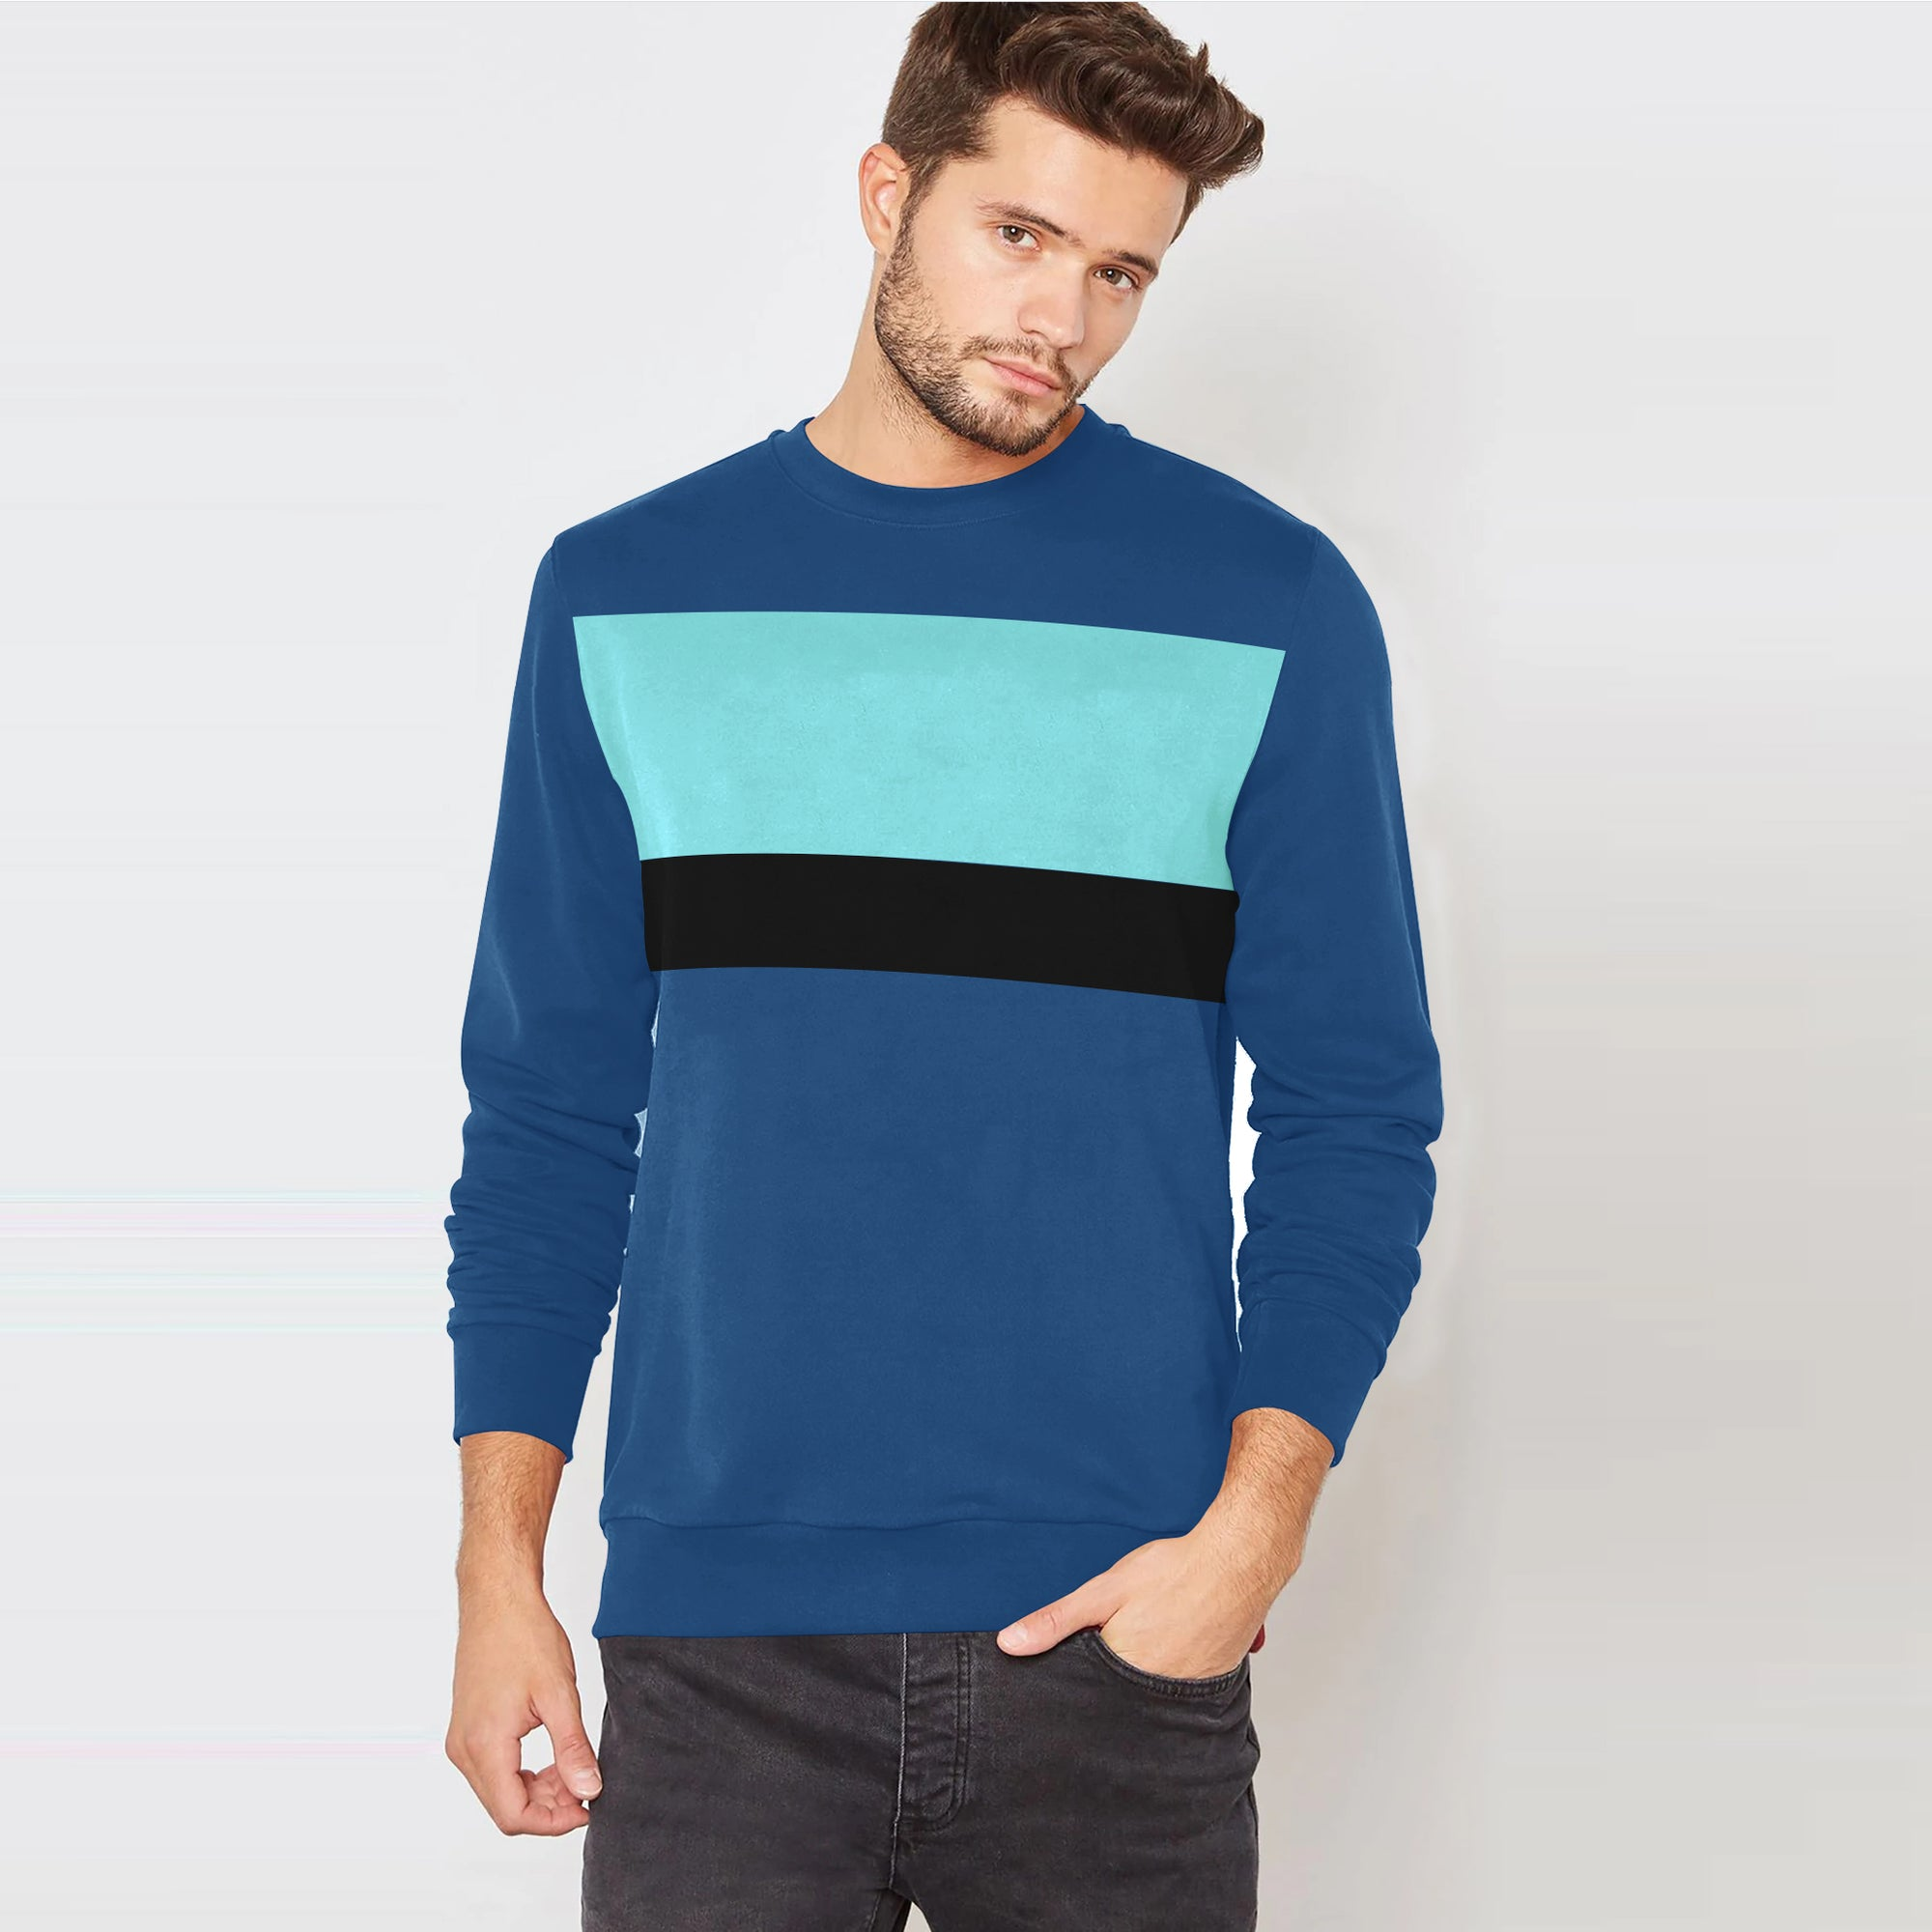 Next Terry Fleece Crew Neck Sweatshirt For Men-Sky Blue with Panels-SP1580